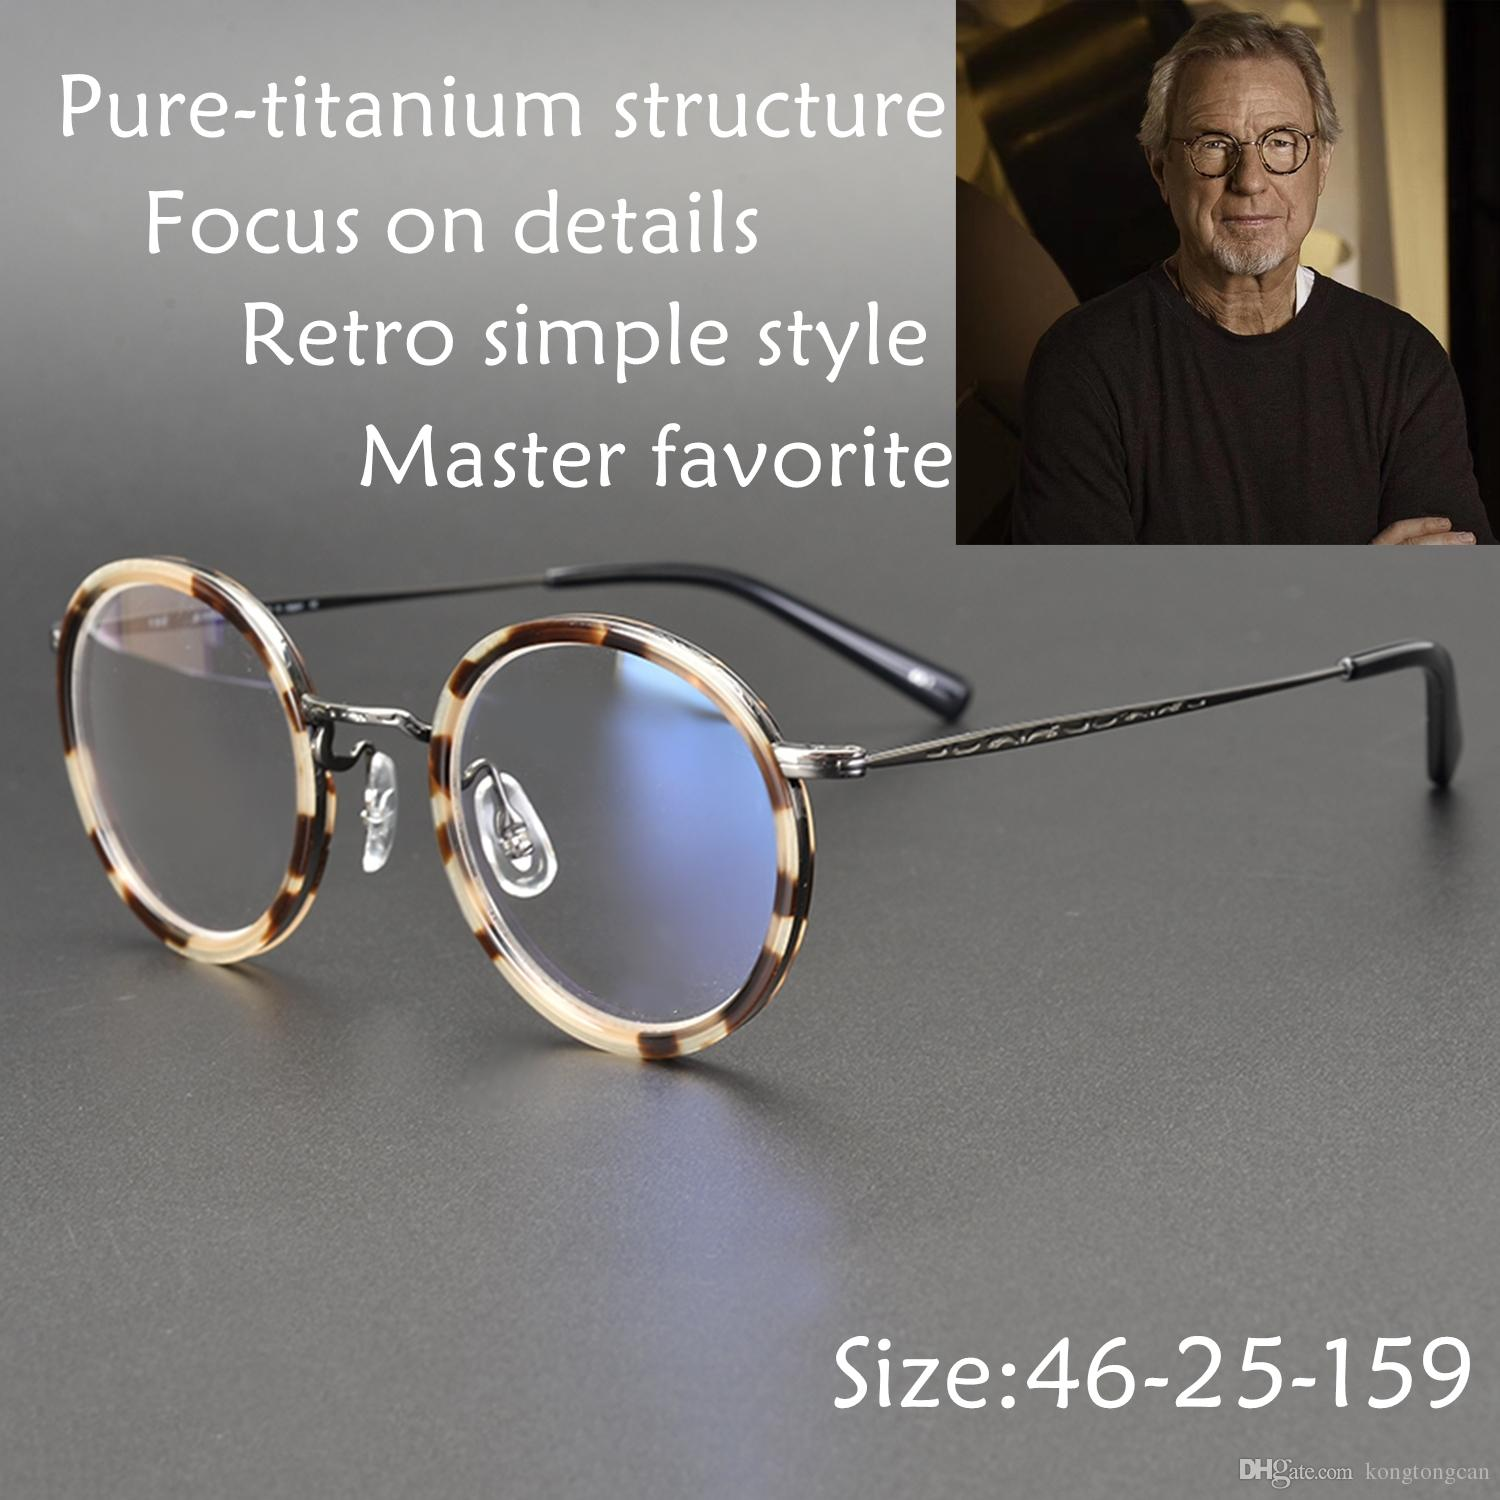 2a5586b8ae 2019 Vintage Retro Simple Masunaga Eyeglasses Pure Titanium GMS 804 Acetate  Frame Women Man Brand Design Original Box And Case Prescription Lens From  ...